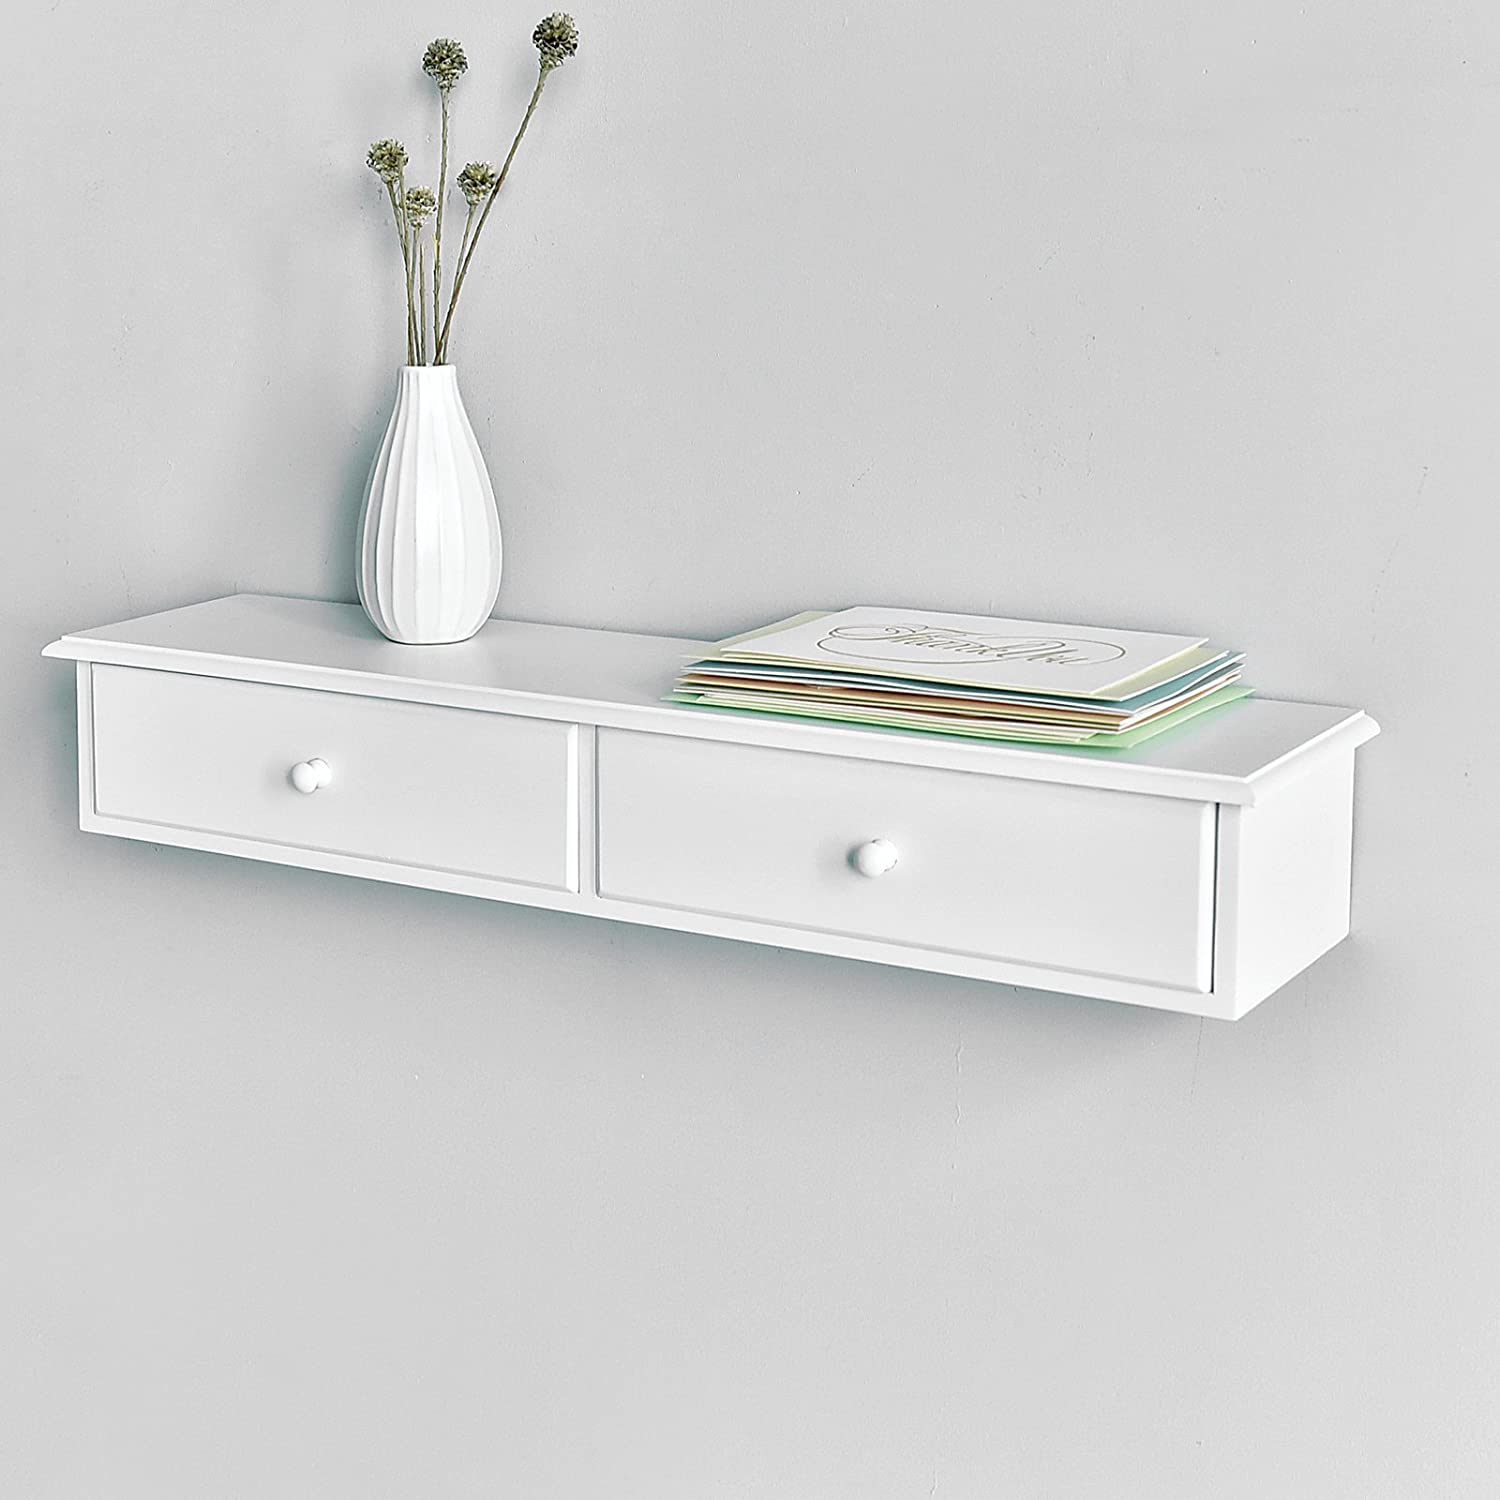 alex drawers drawer with ekby catalog shelf ikea en us products